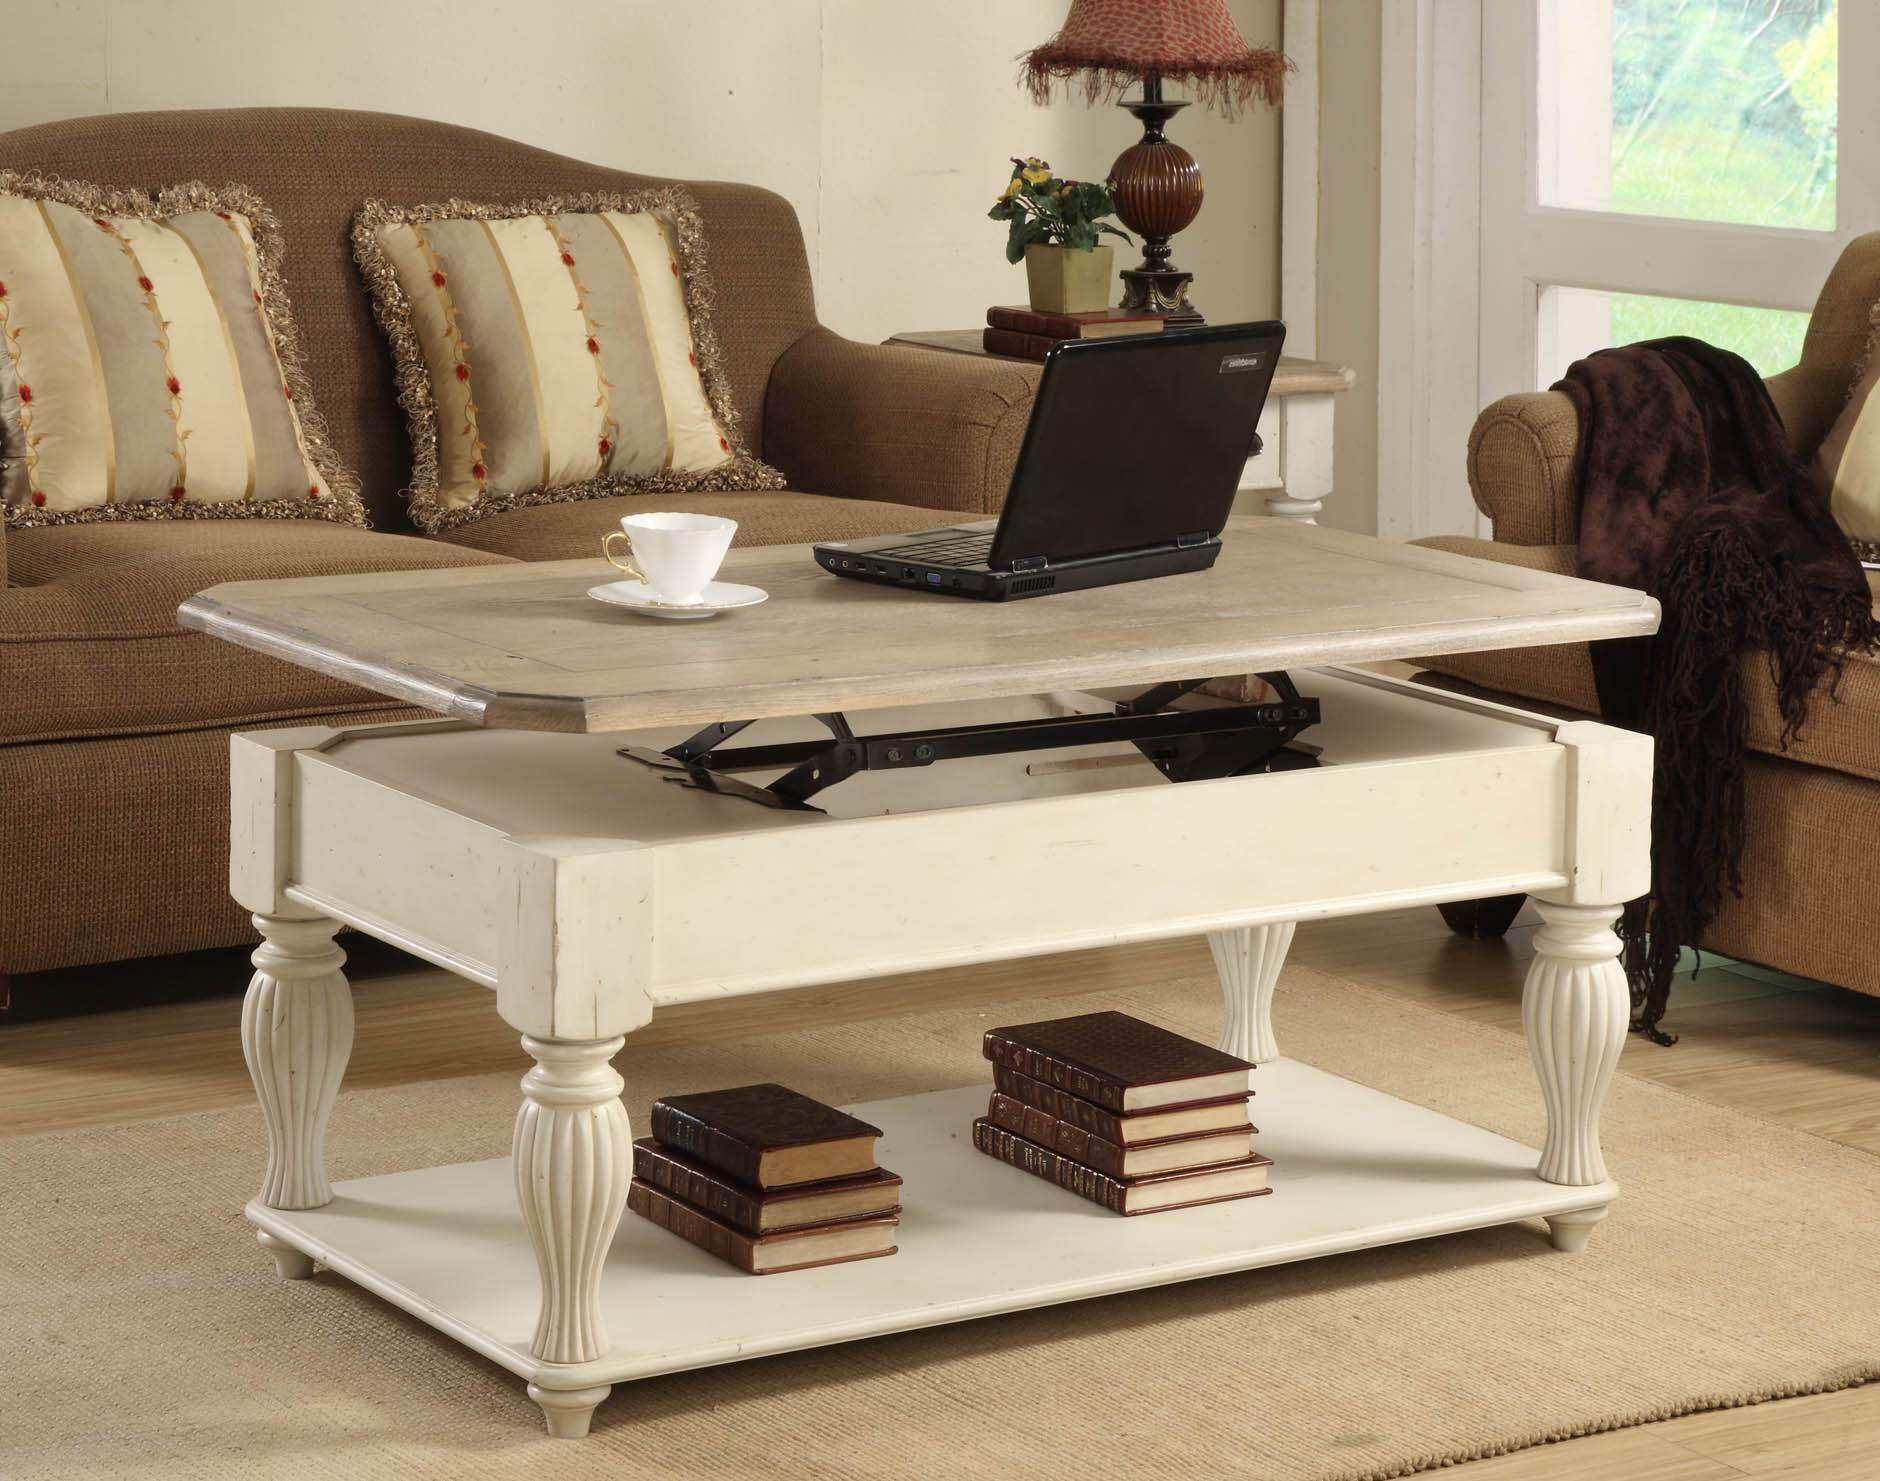 Lift Up Coffee Table Ikea Maximizing Practicality With Lift Up Coffee Table From Ikea Coffe